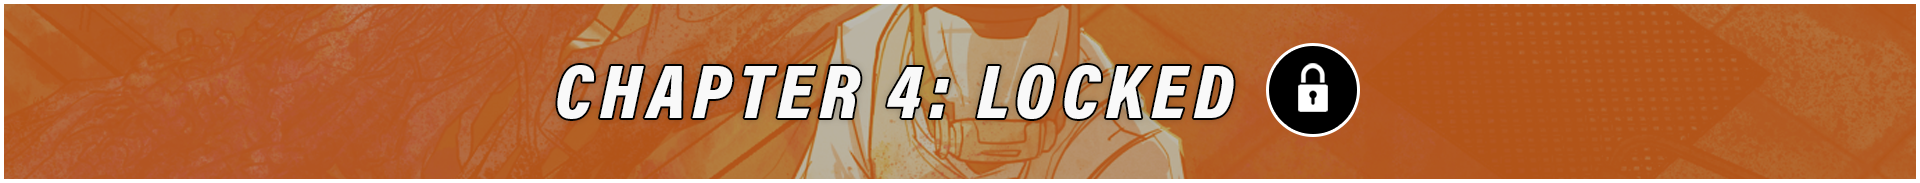 chapter 4 locked.png